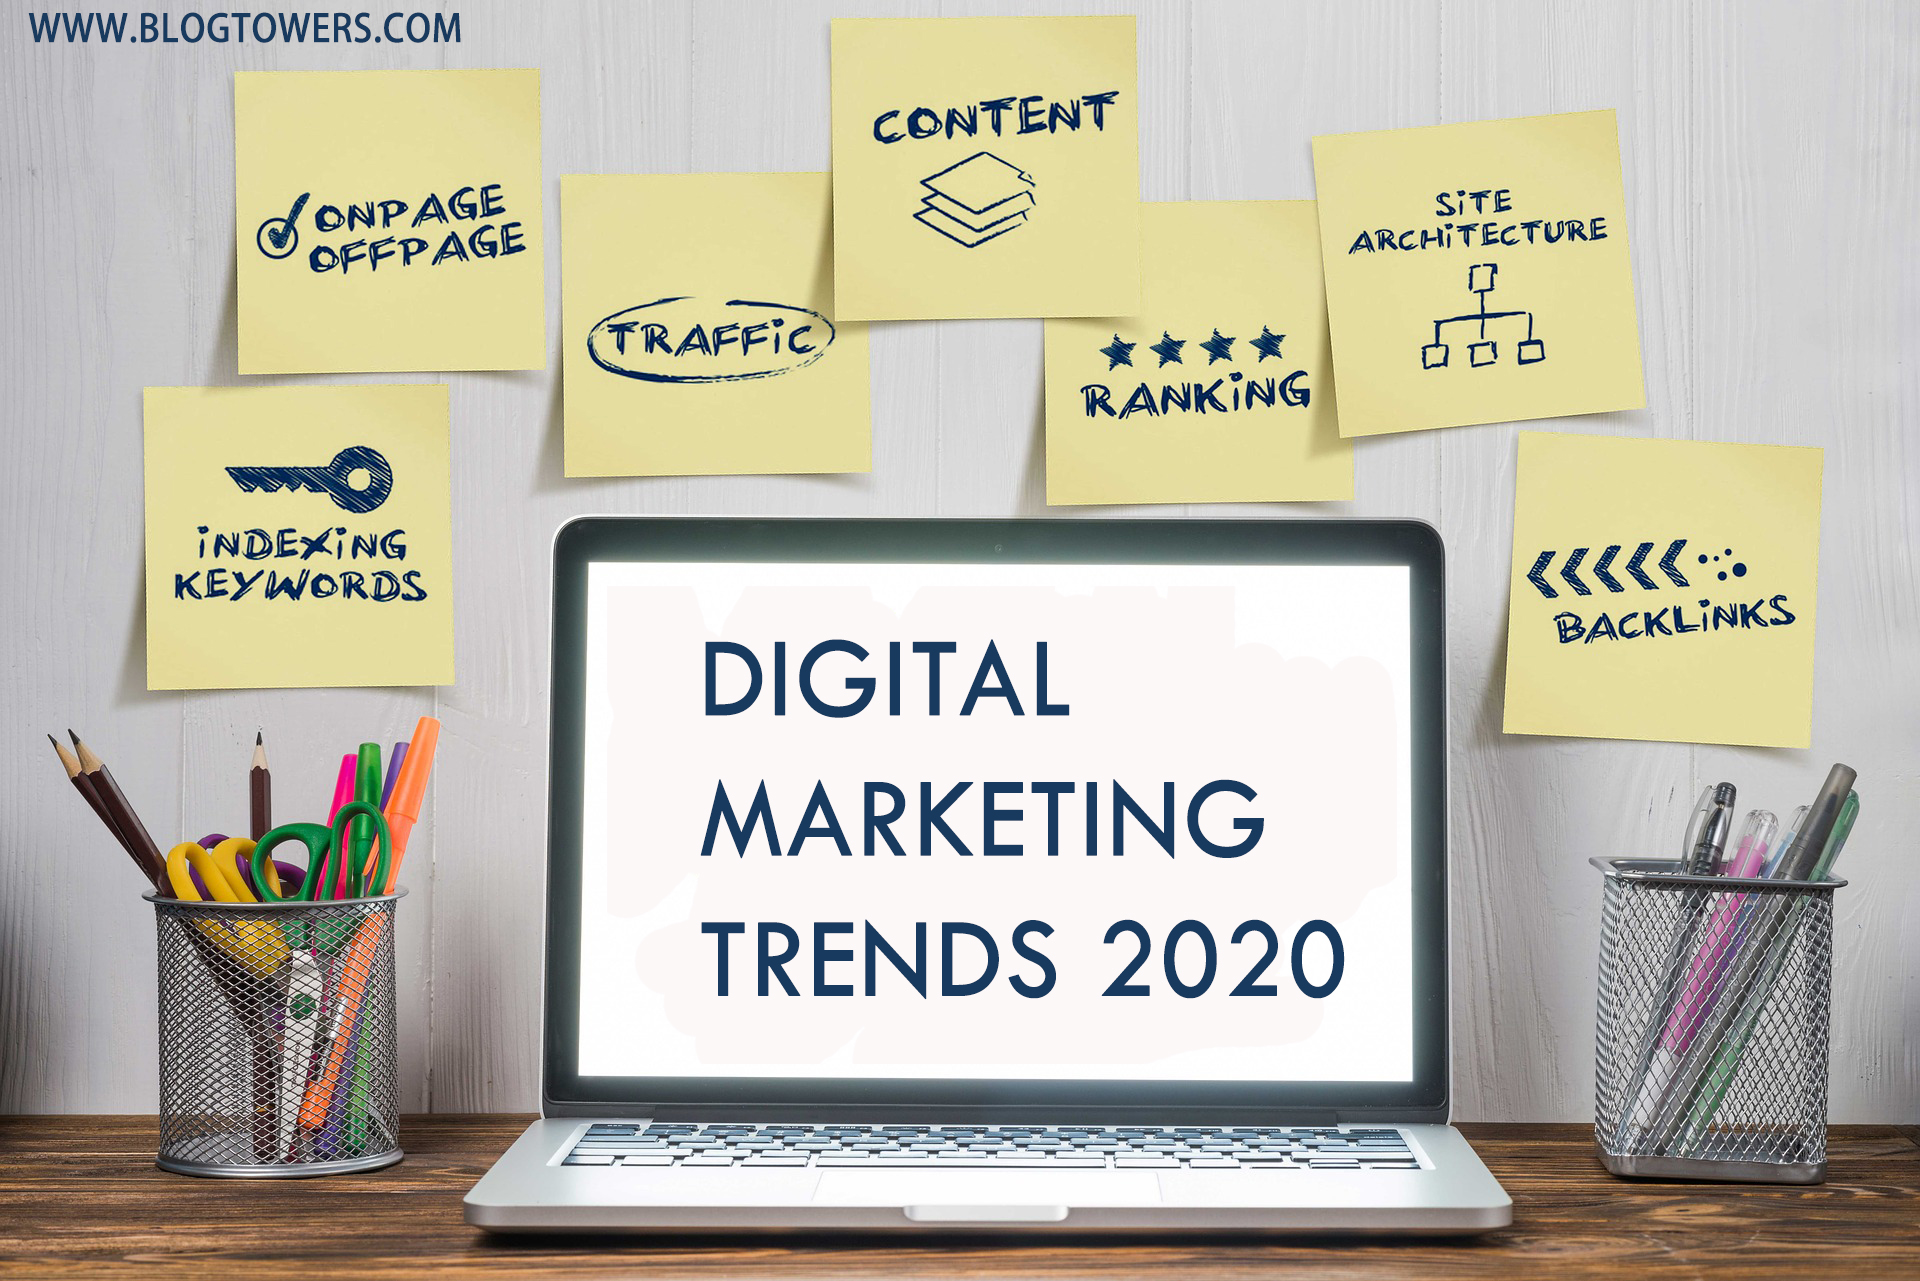 Upcoming digital marketing trends and techniques trends